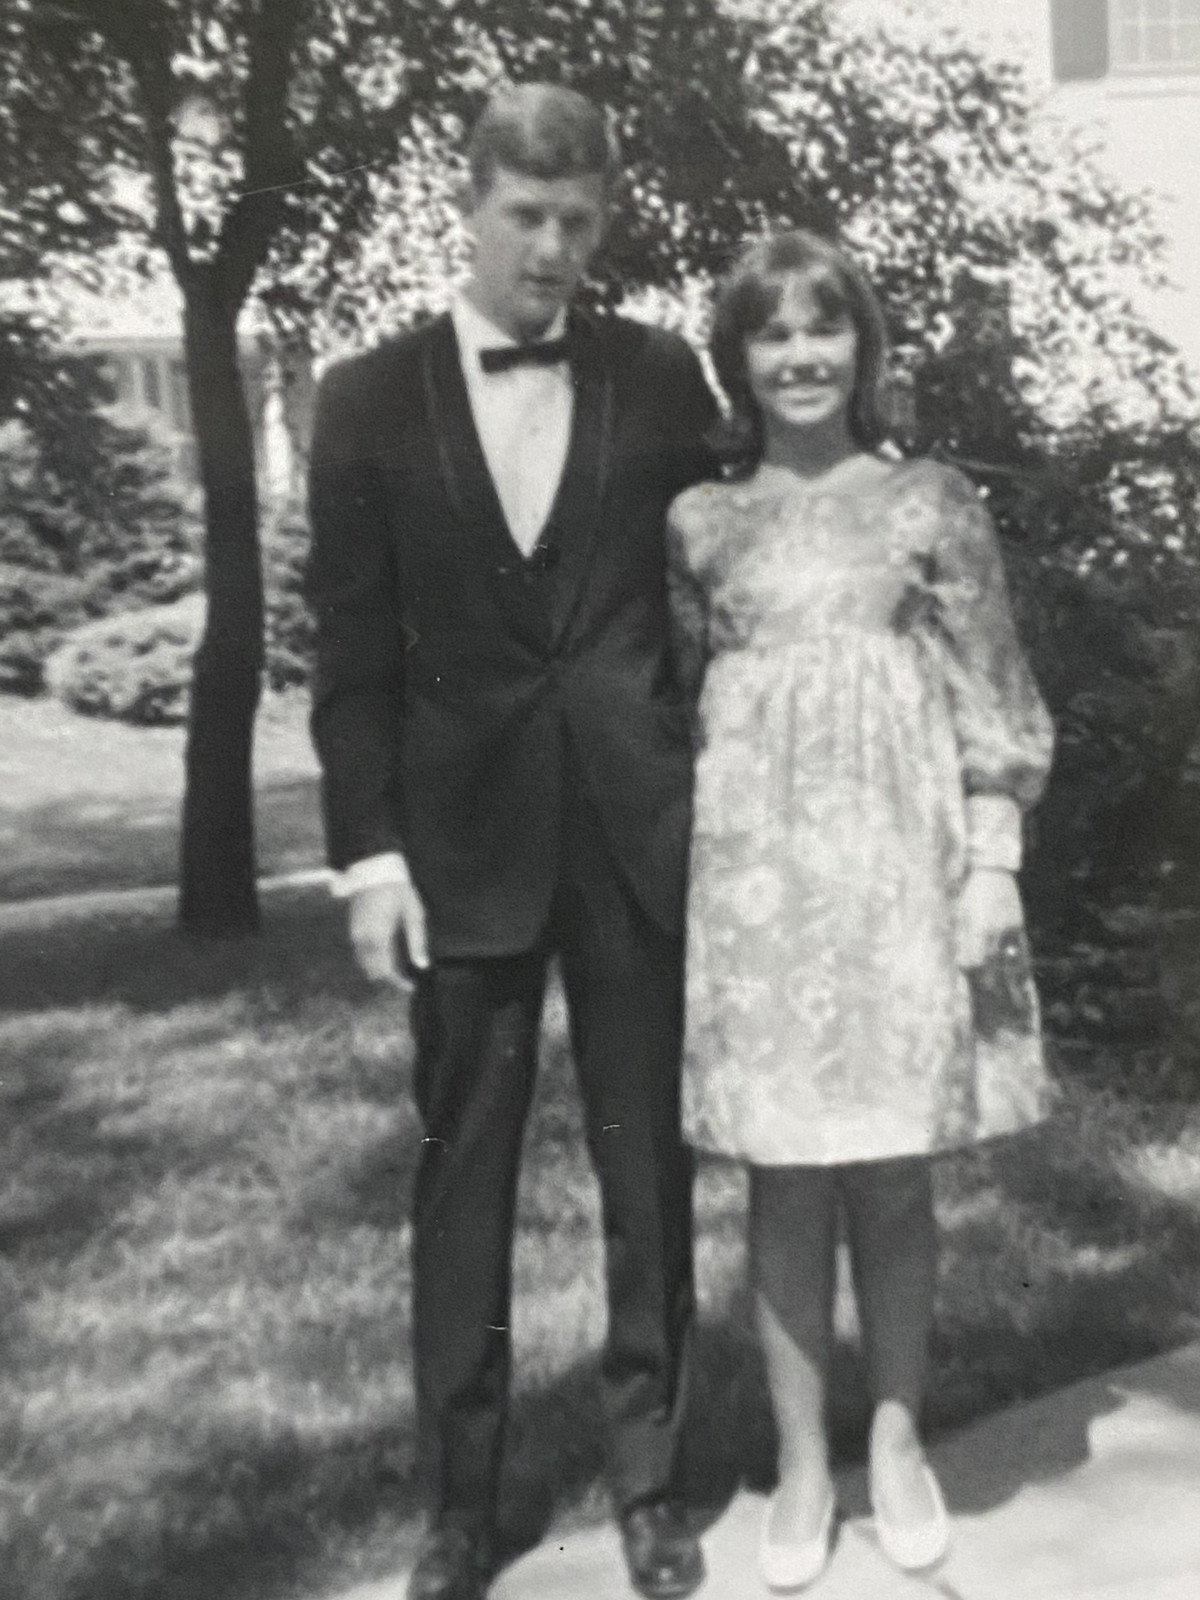 William Dabbert, shown here with date before his high school prom, attended Western Illinois University but left school a semester before graduation because he expected to be drafted and wanted to spend time with his hometown friends.